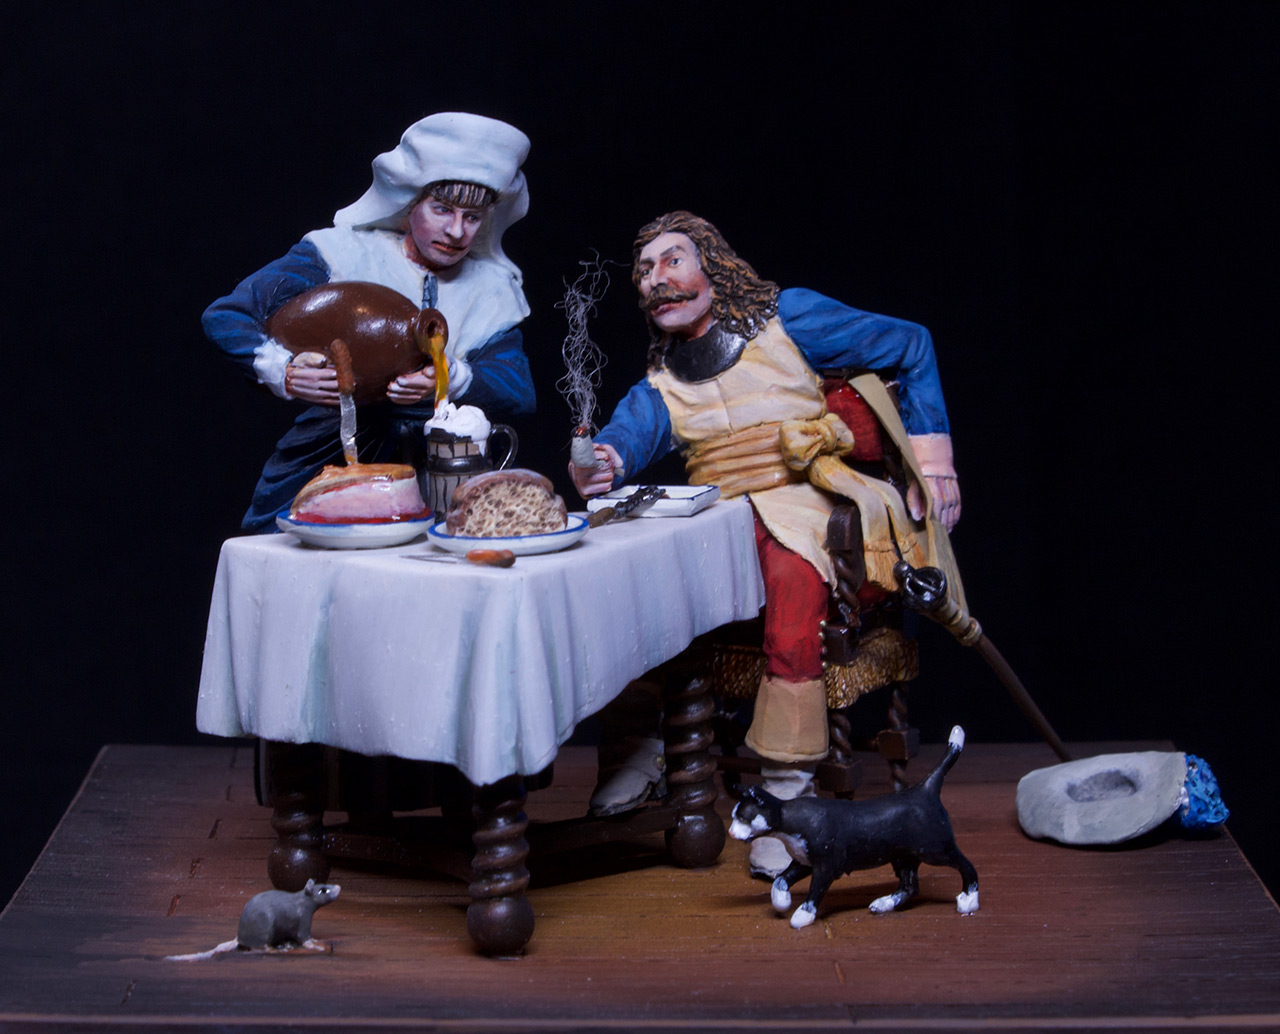 Dioramas and Vignettes: Waitress and cavalier, photo #9